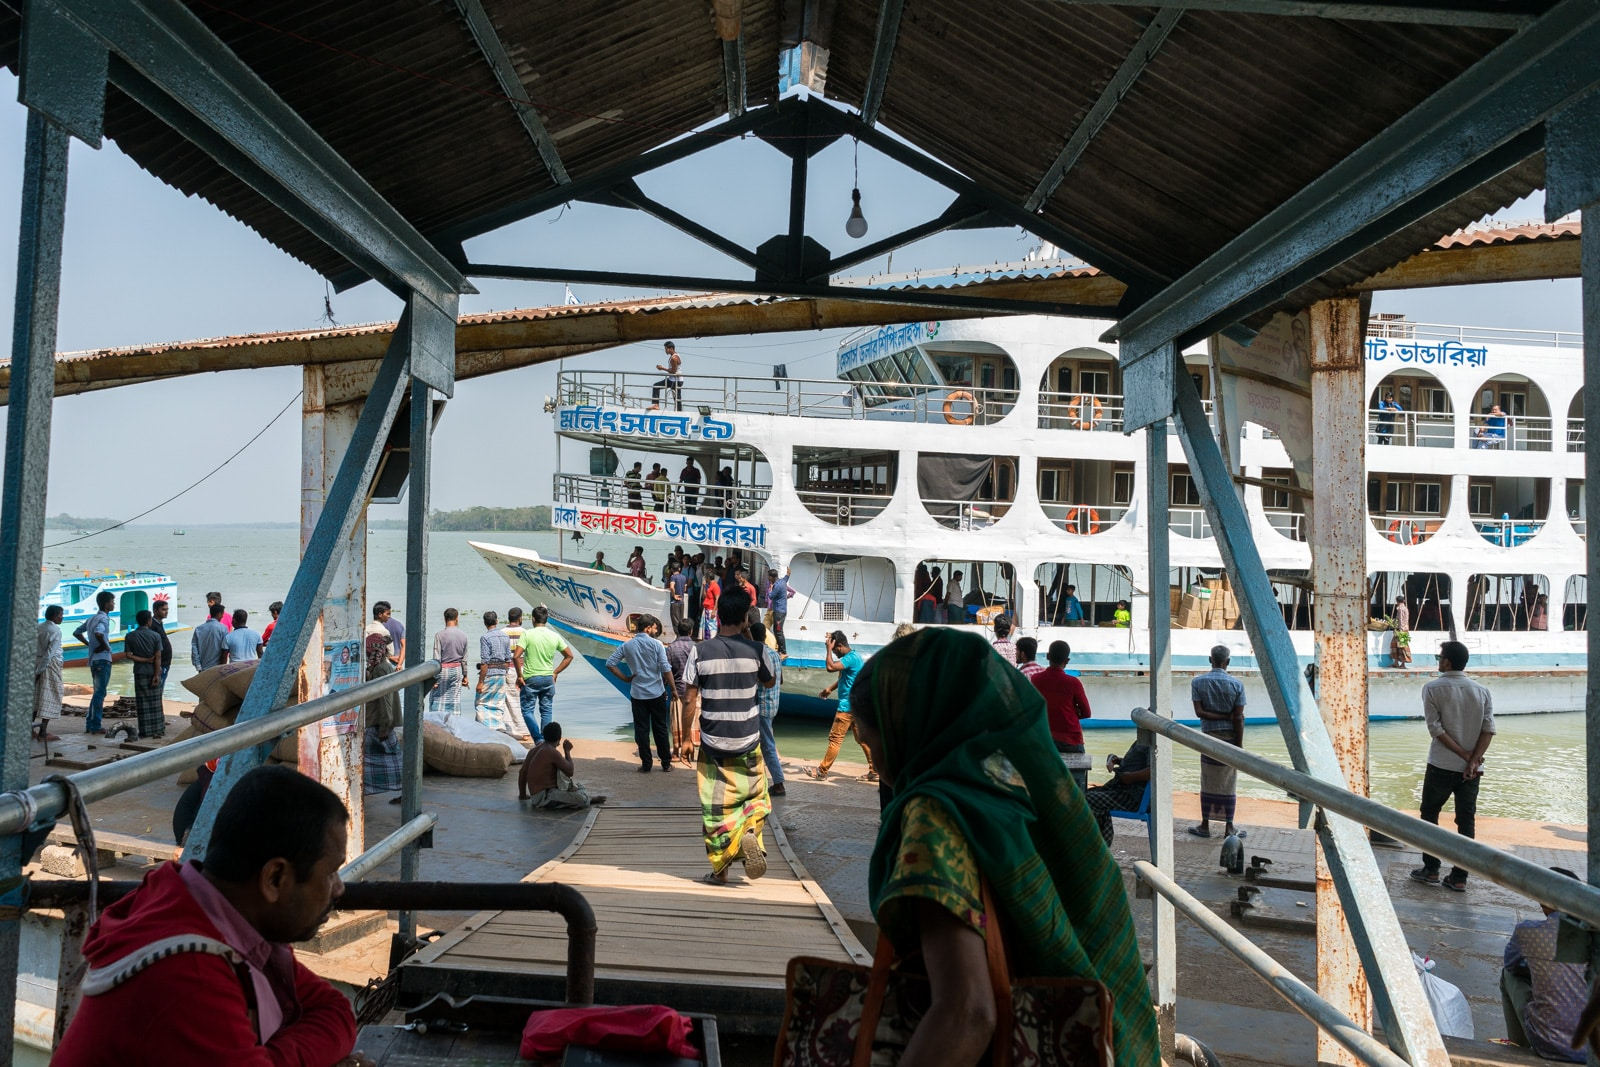 How to get a launch boat from Khulna to Dhaka via Hularhat - Launch boat arriving - Lost With Purpose travel blog